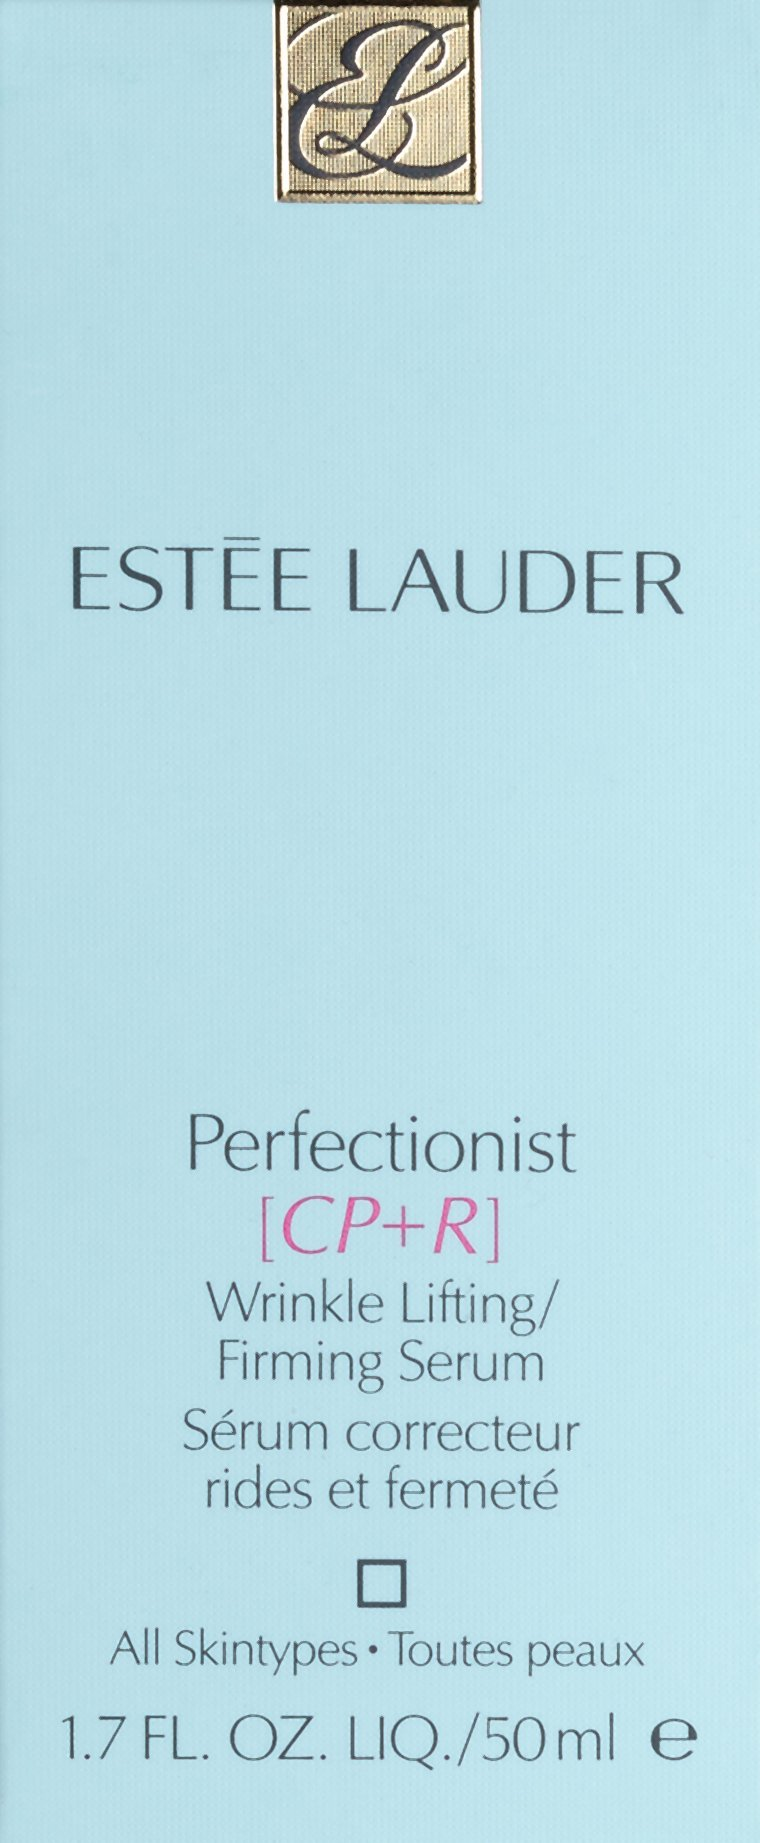 Estee Lauder Perfectionist Cp R Wrinkle Lifting Firming Serum For All Skin Types 50ml 17oz 935353eu Serums Beauty Personal Care Tibs